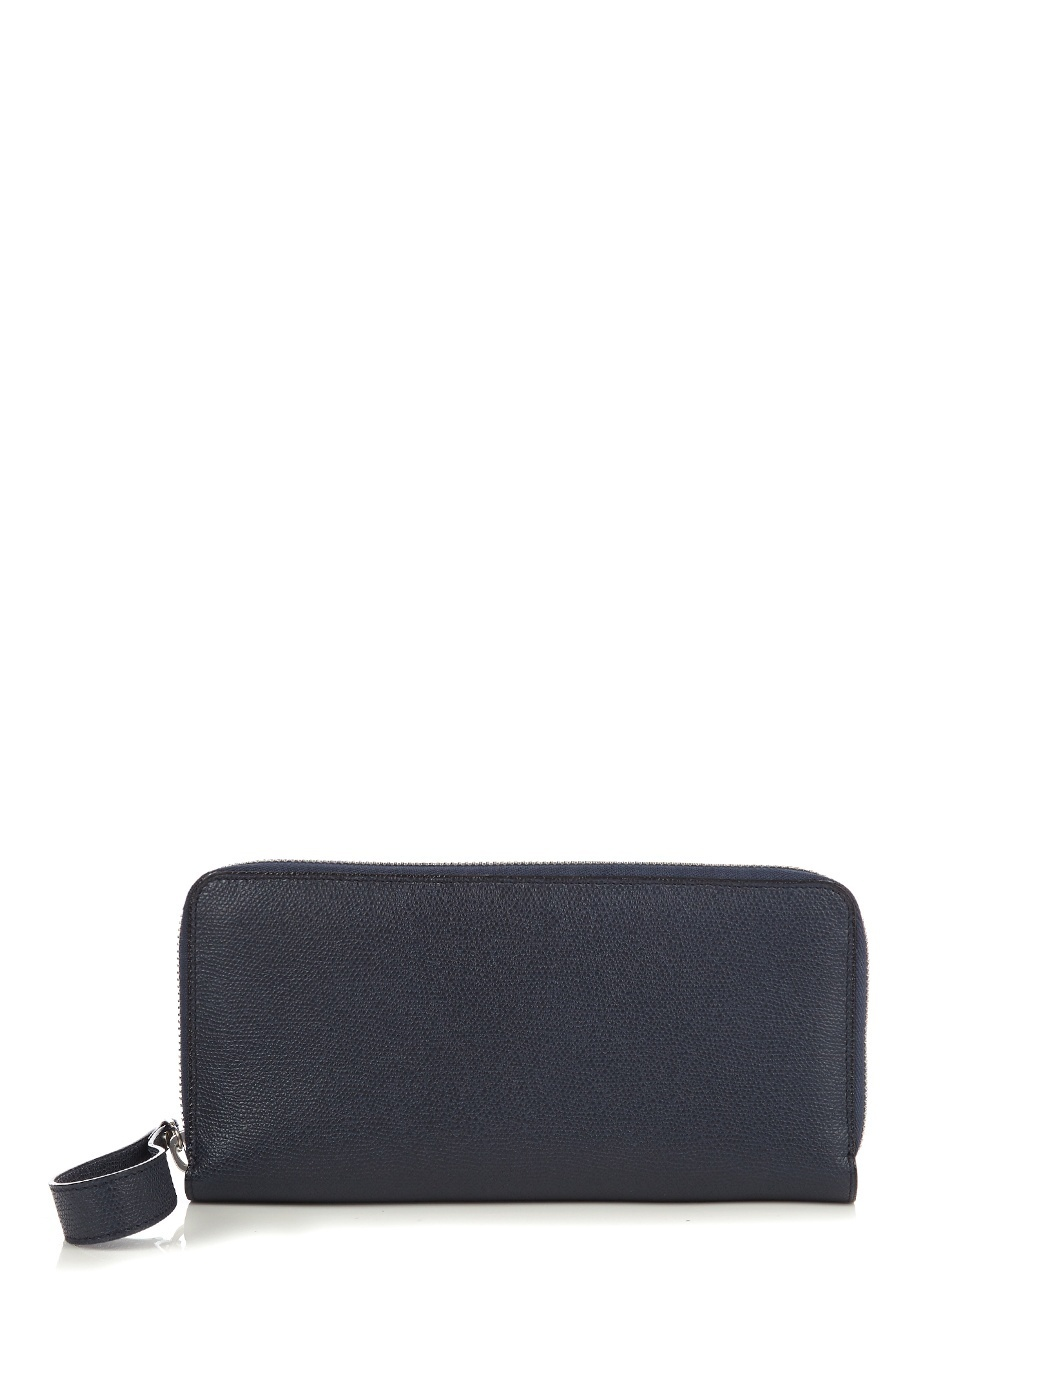 【VIPセール】Valextra★All-in-one leather travel wallet 財布